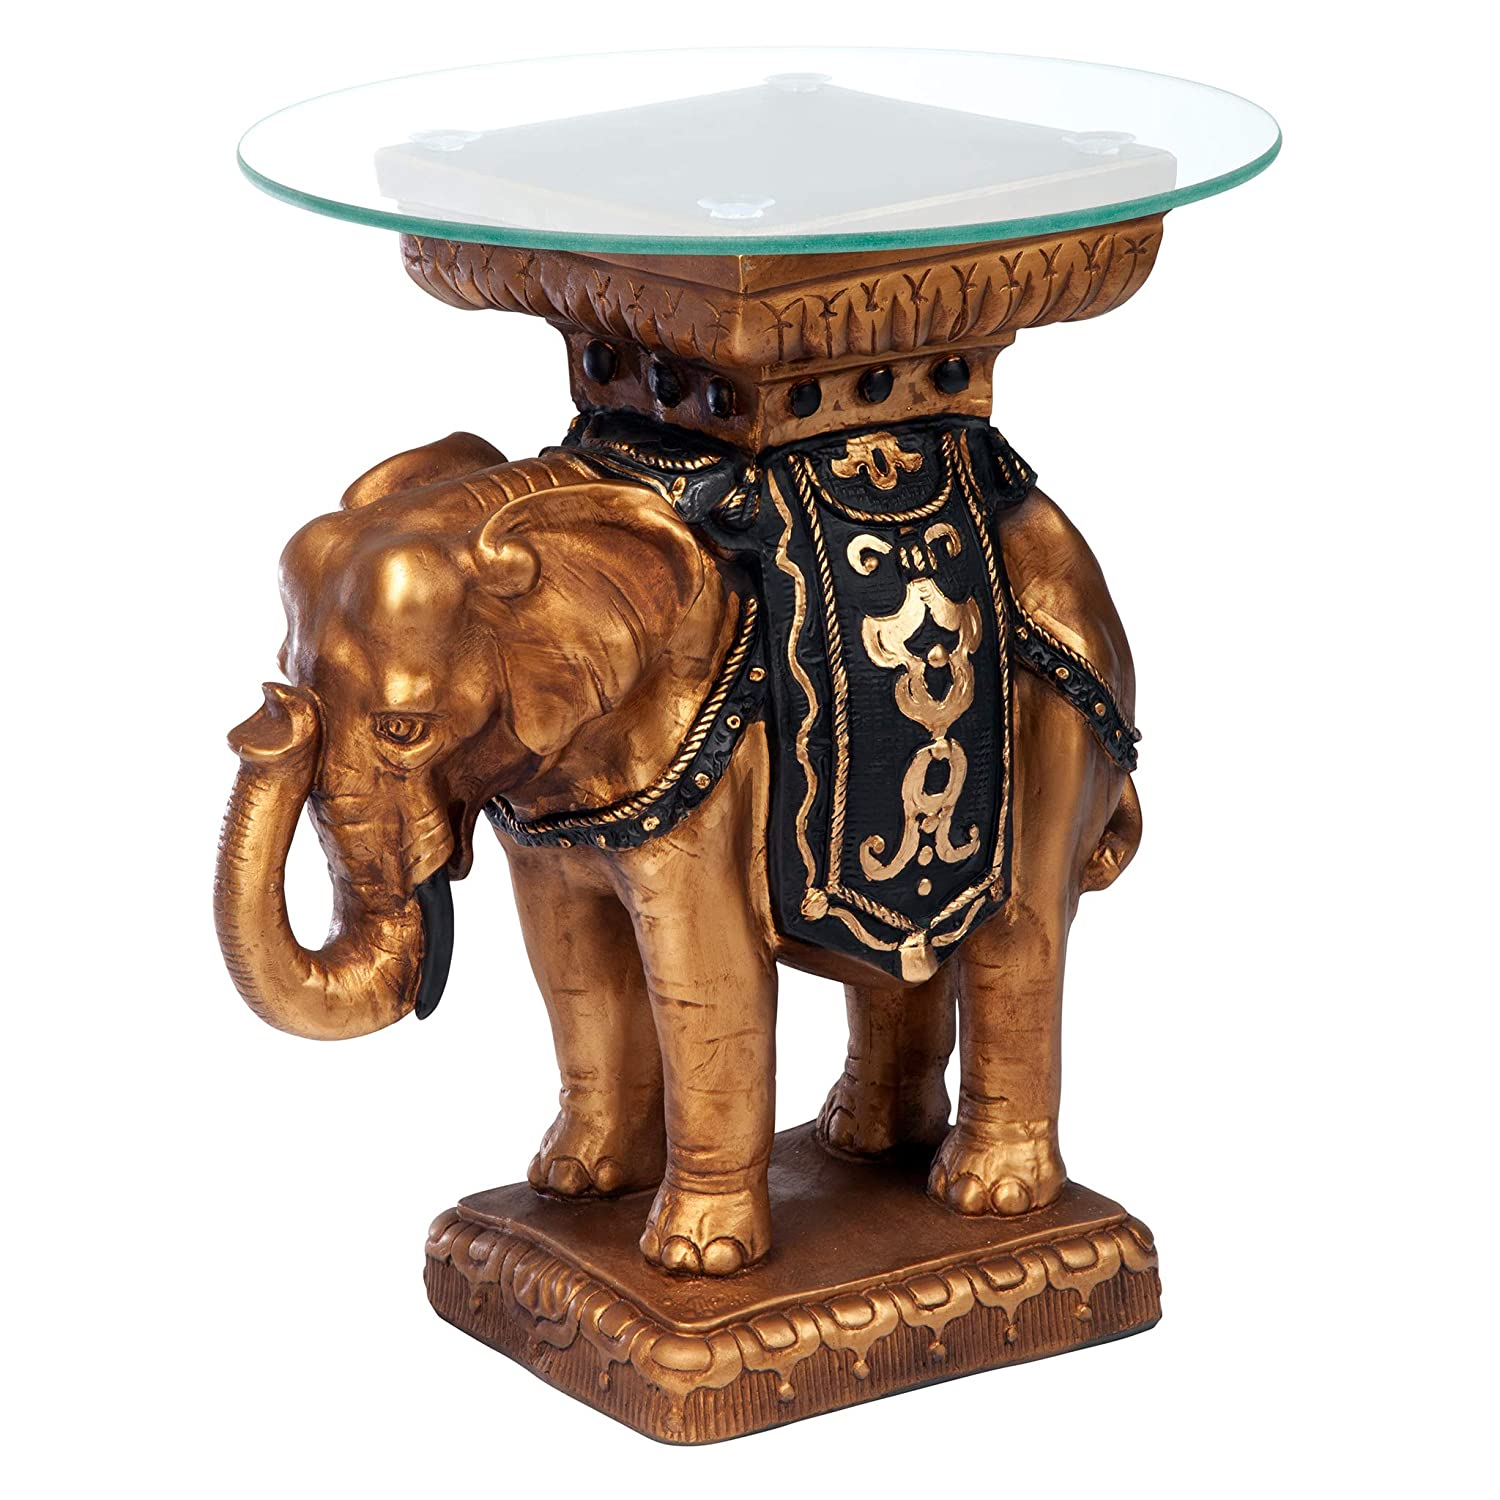 Design Toscano Maharajah Elephant Indian Decor Glass Topped Side Table, 22 Inch, Polyresin, Black and Gold